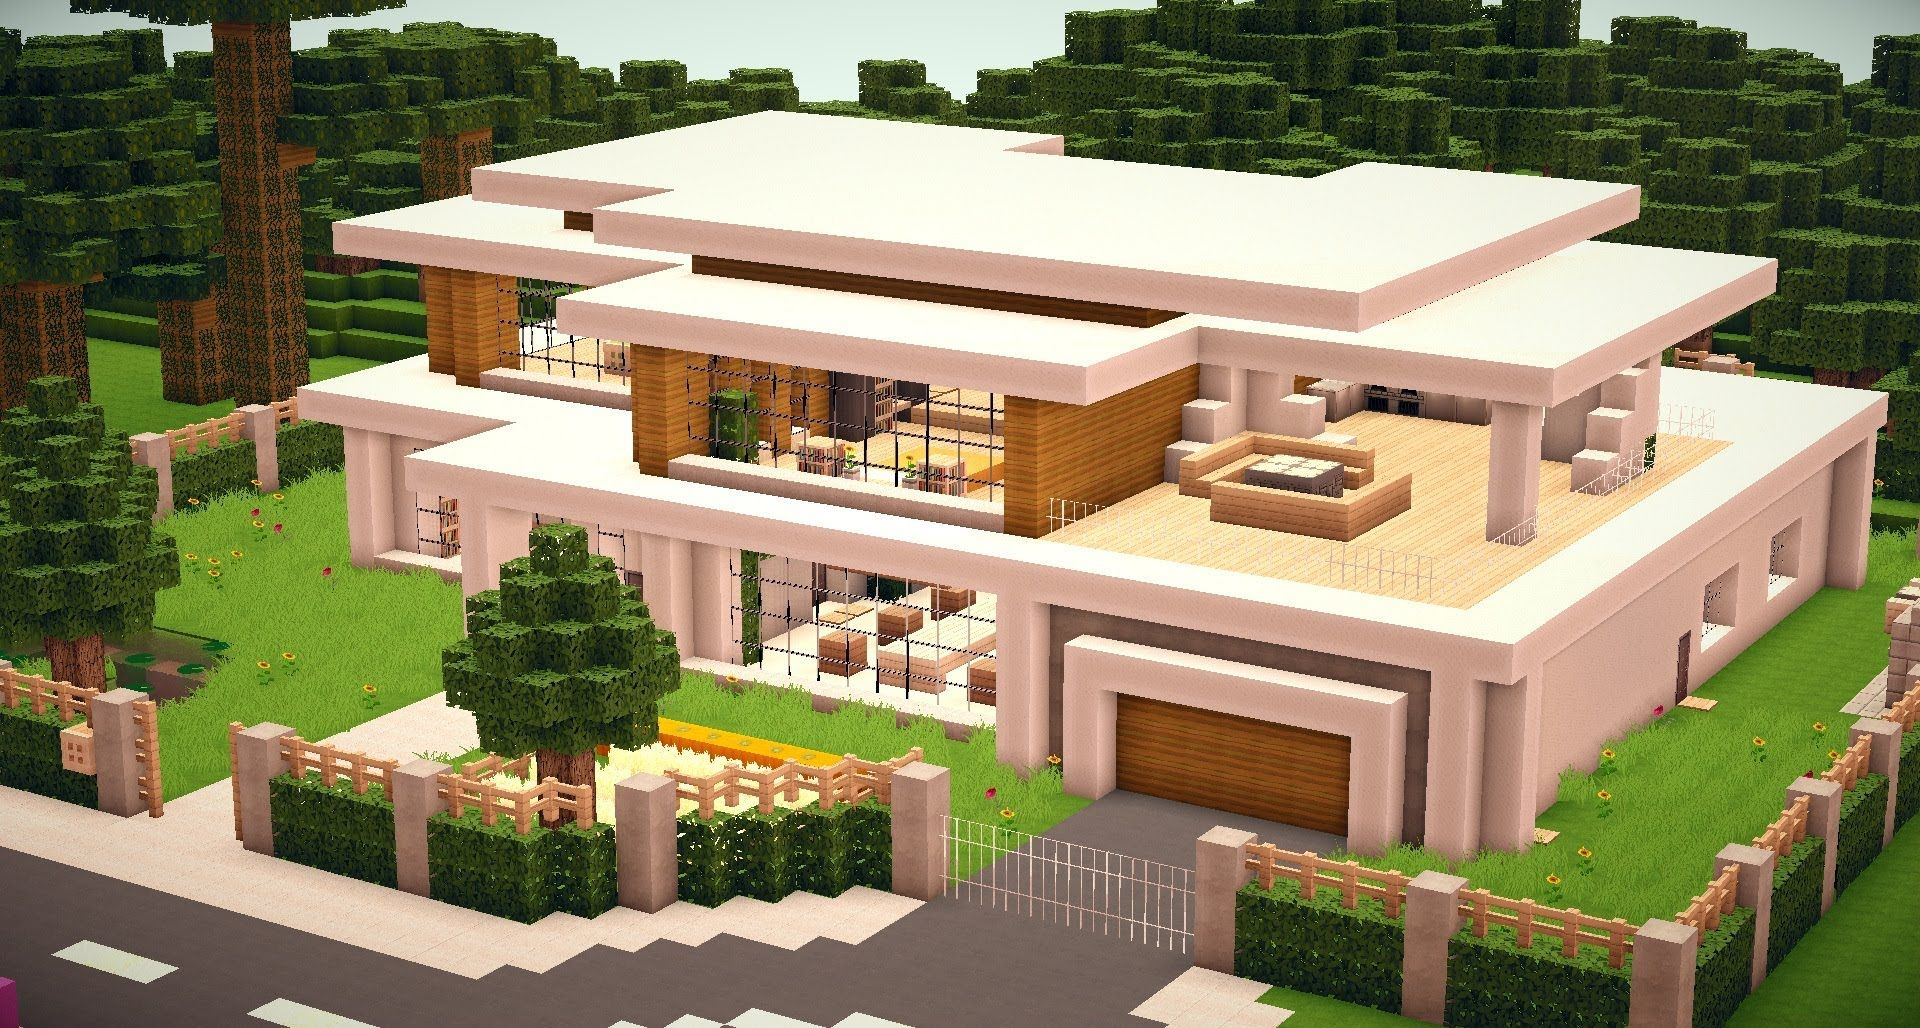 Minecraft haus modern 05 minecraft pinterest for Minecraft haus modern